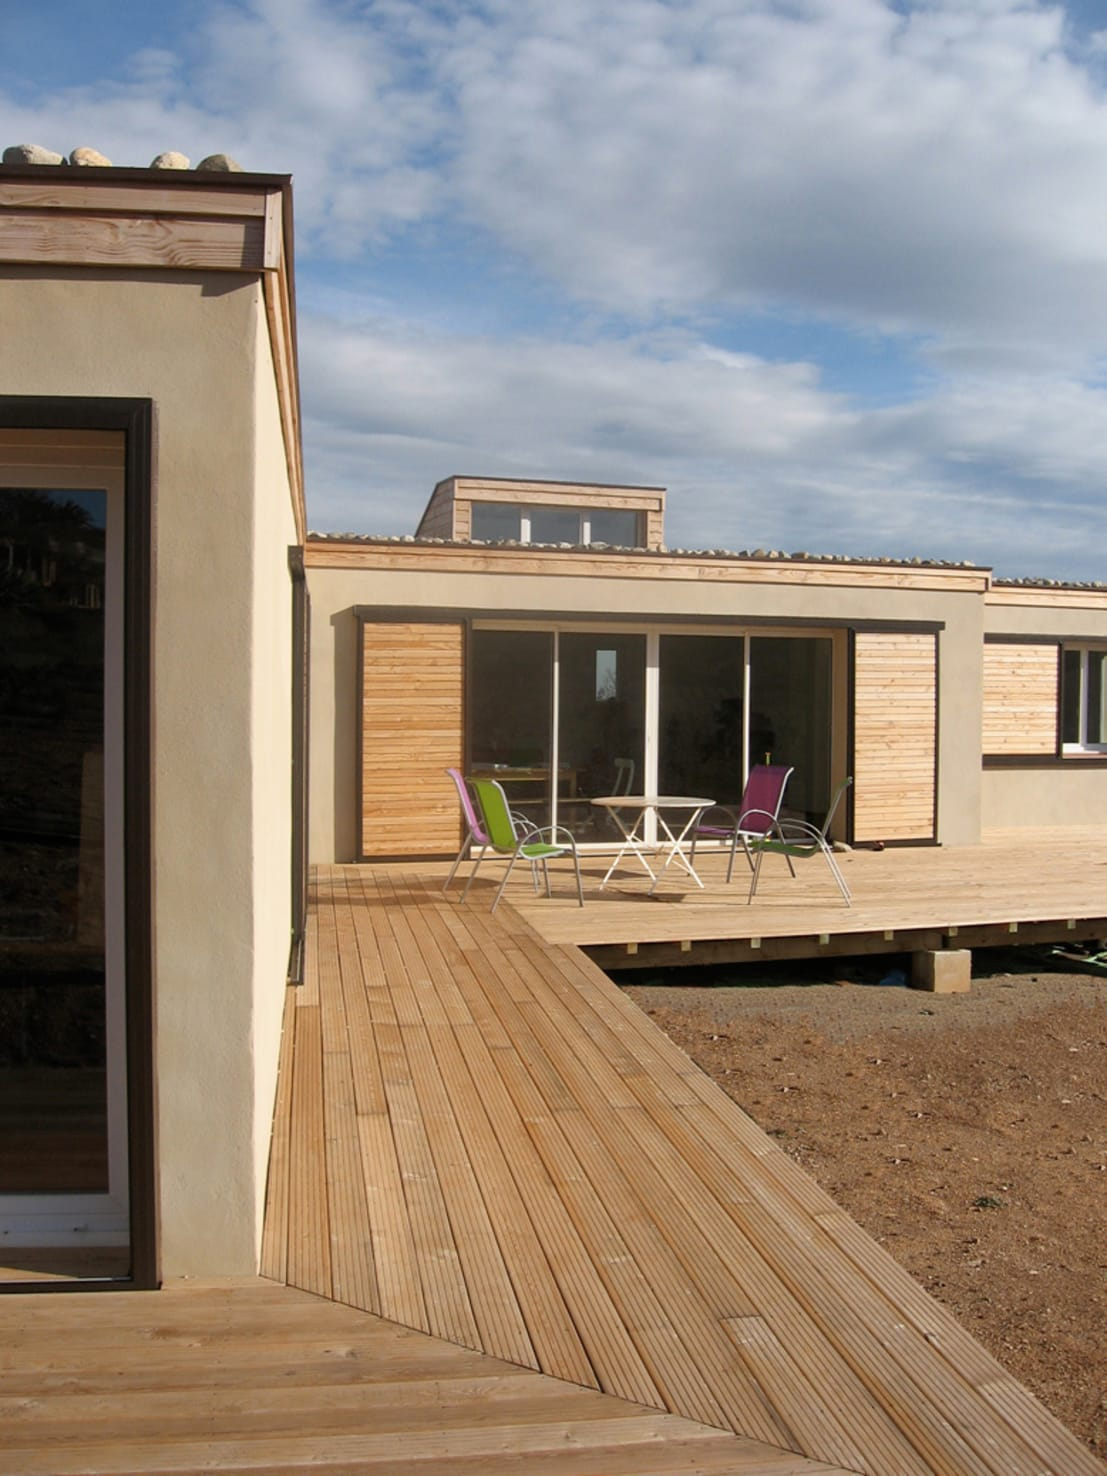 Maison basse consommation d 39 nergie profesjonalista atelier e homify - Maison basse consommation ...